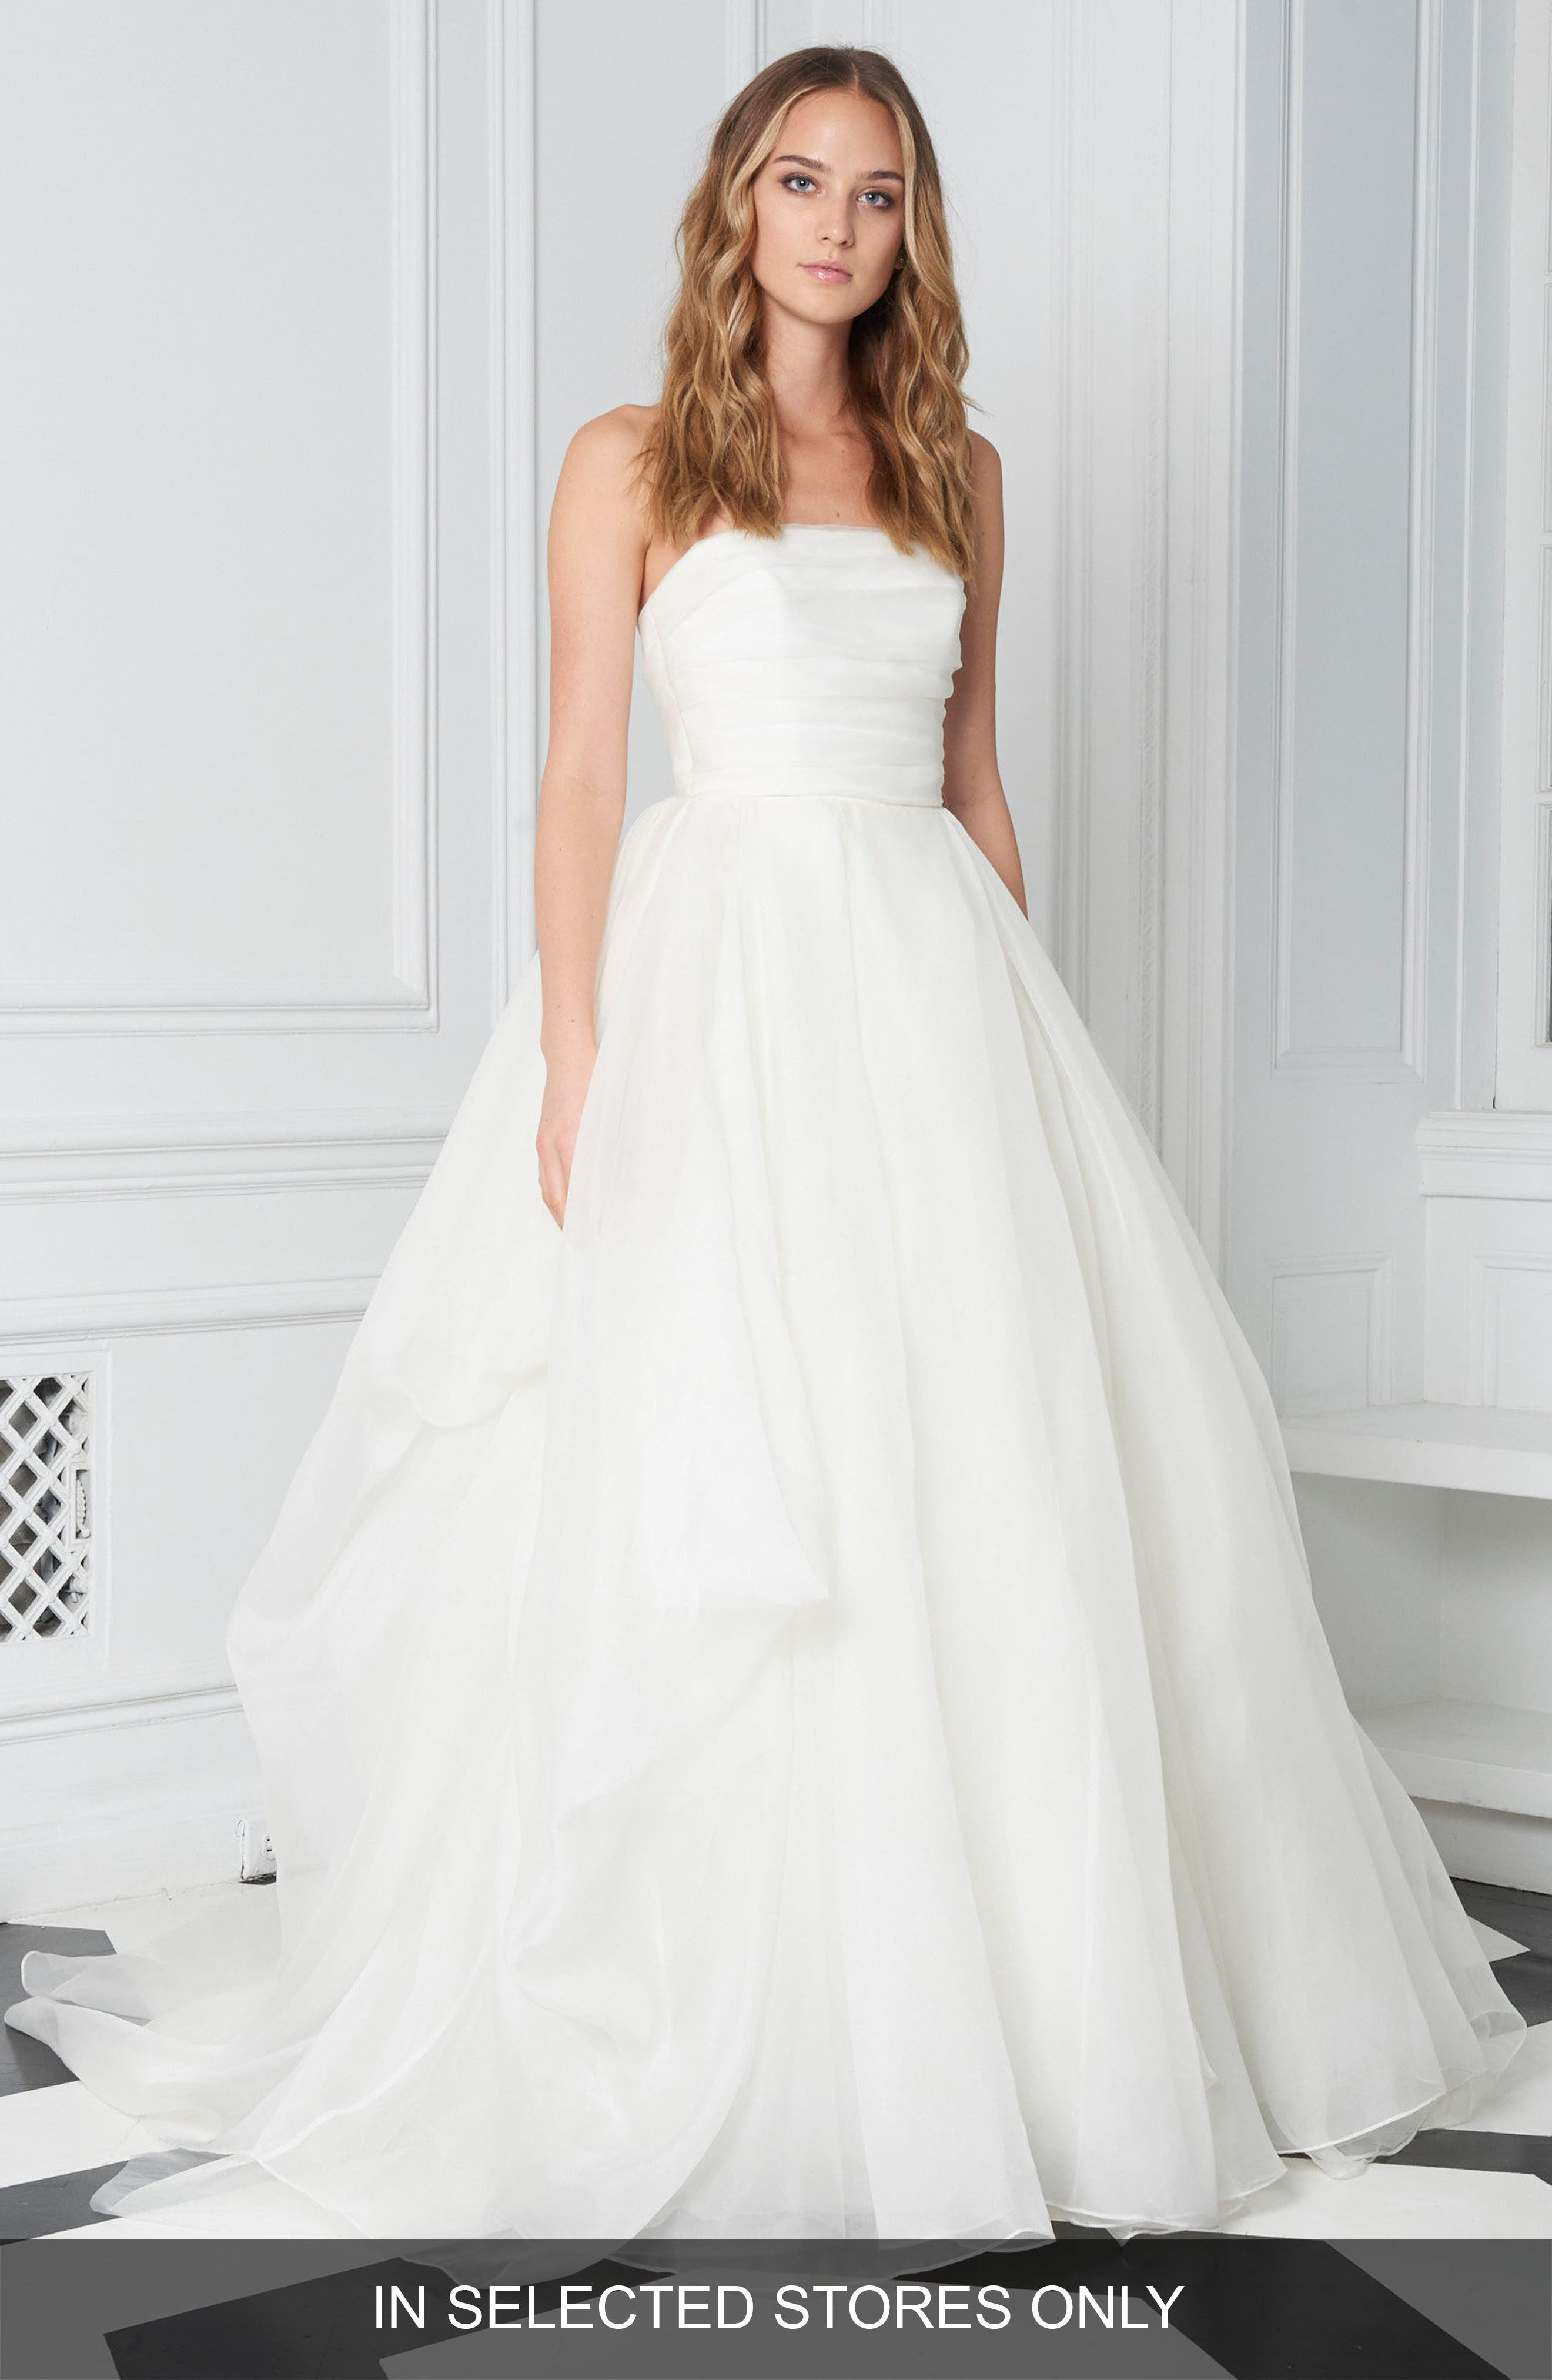 Alternate Image 1 Selected - BLISS Monique Lhuillier Strapless Organza Ballgown